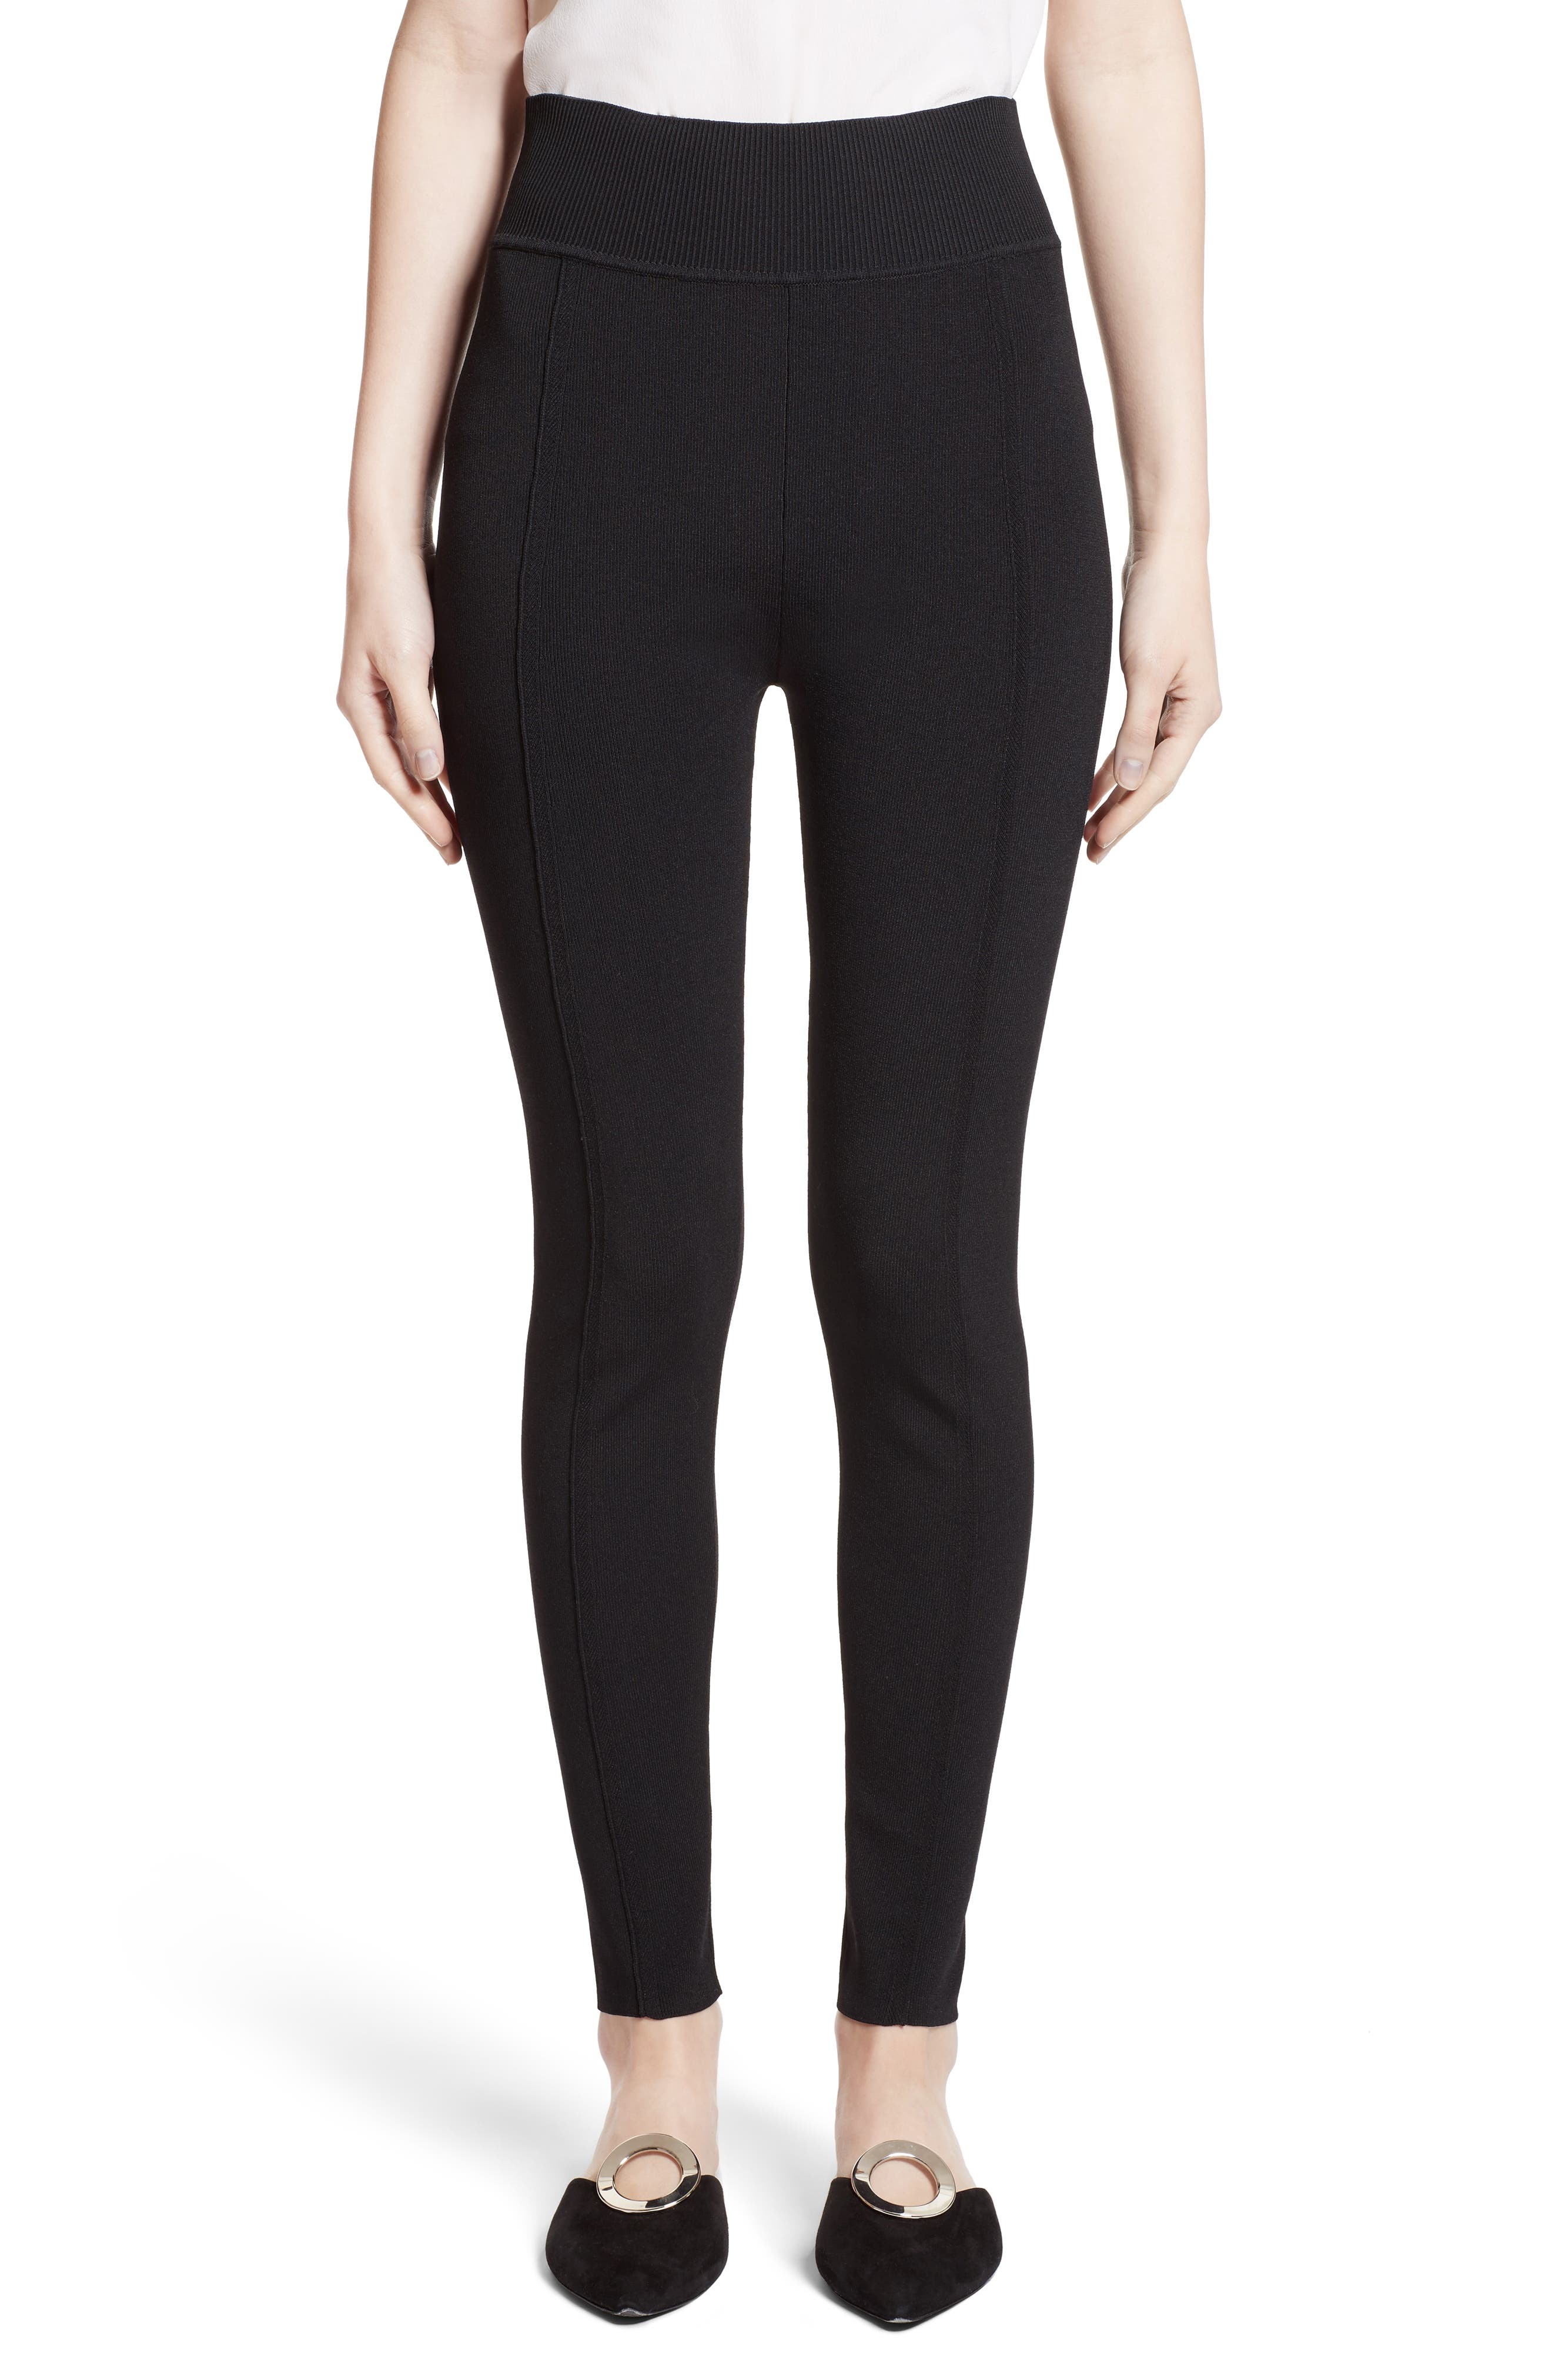 Proenza Schouler Knit Leggings